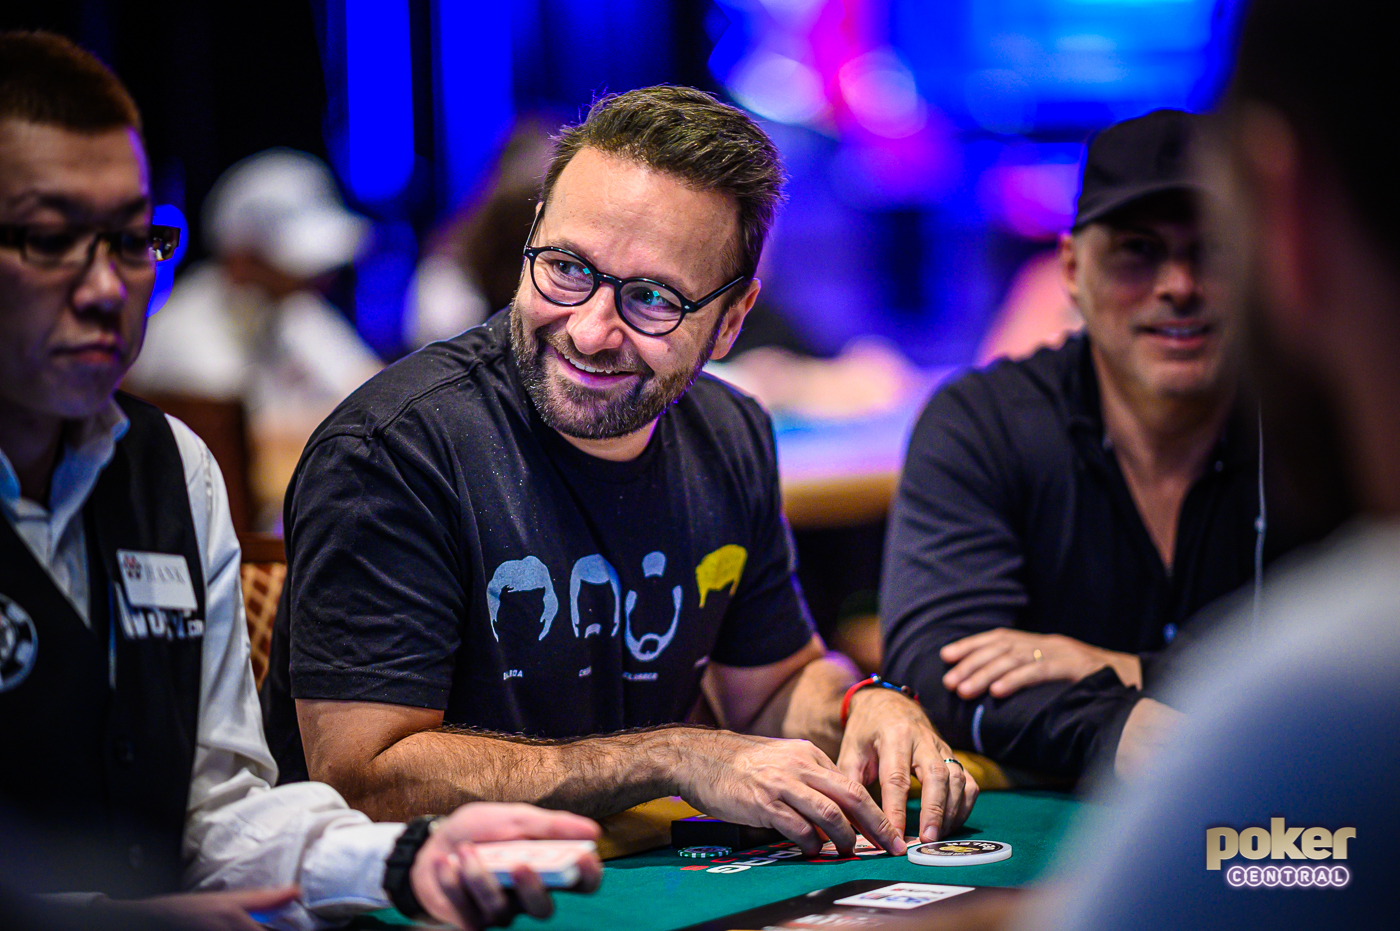 Daniel Negreanu eyes his seventh WSOP bracelets at today's final table on PokerGO and CBS All-Access.